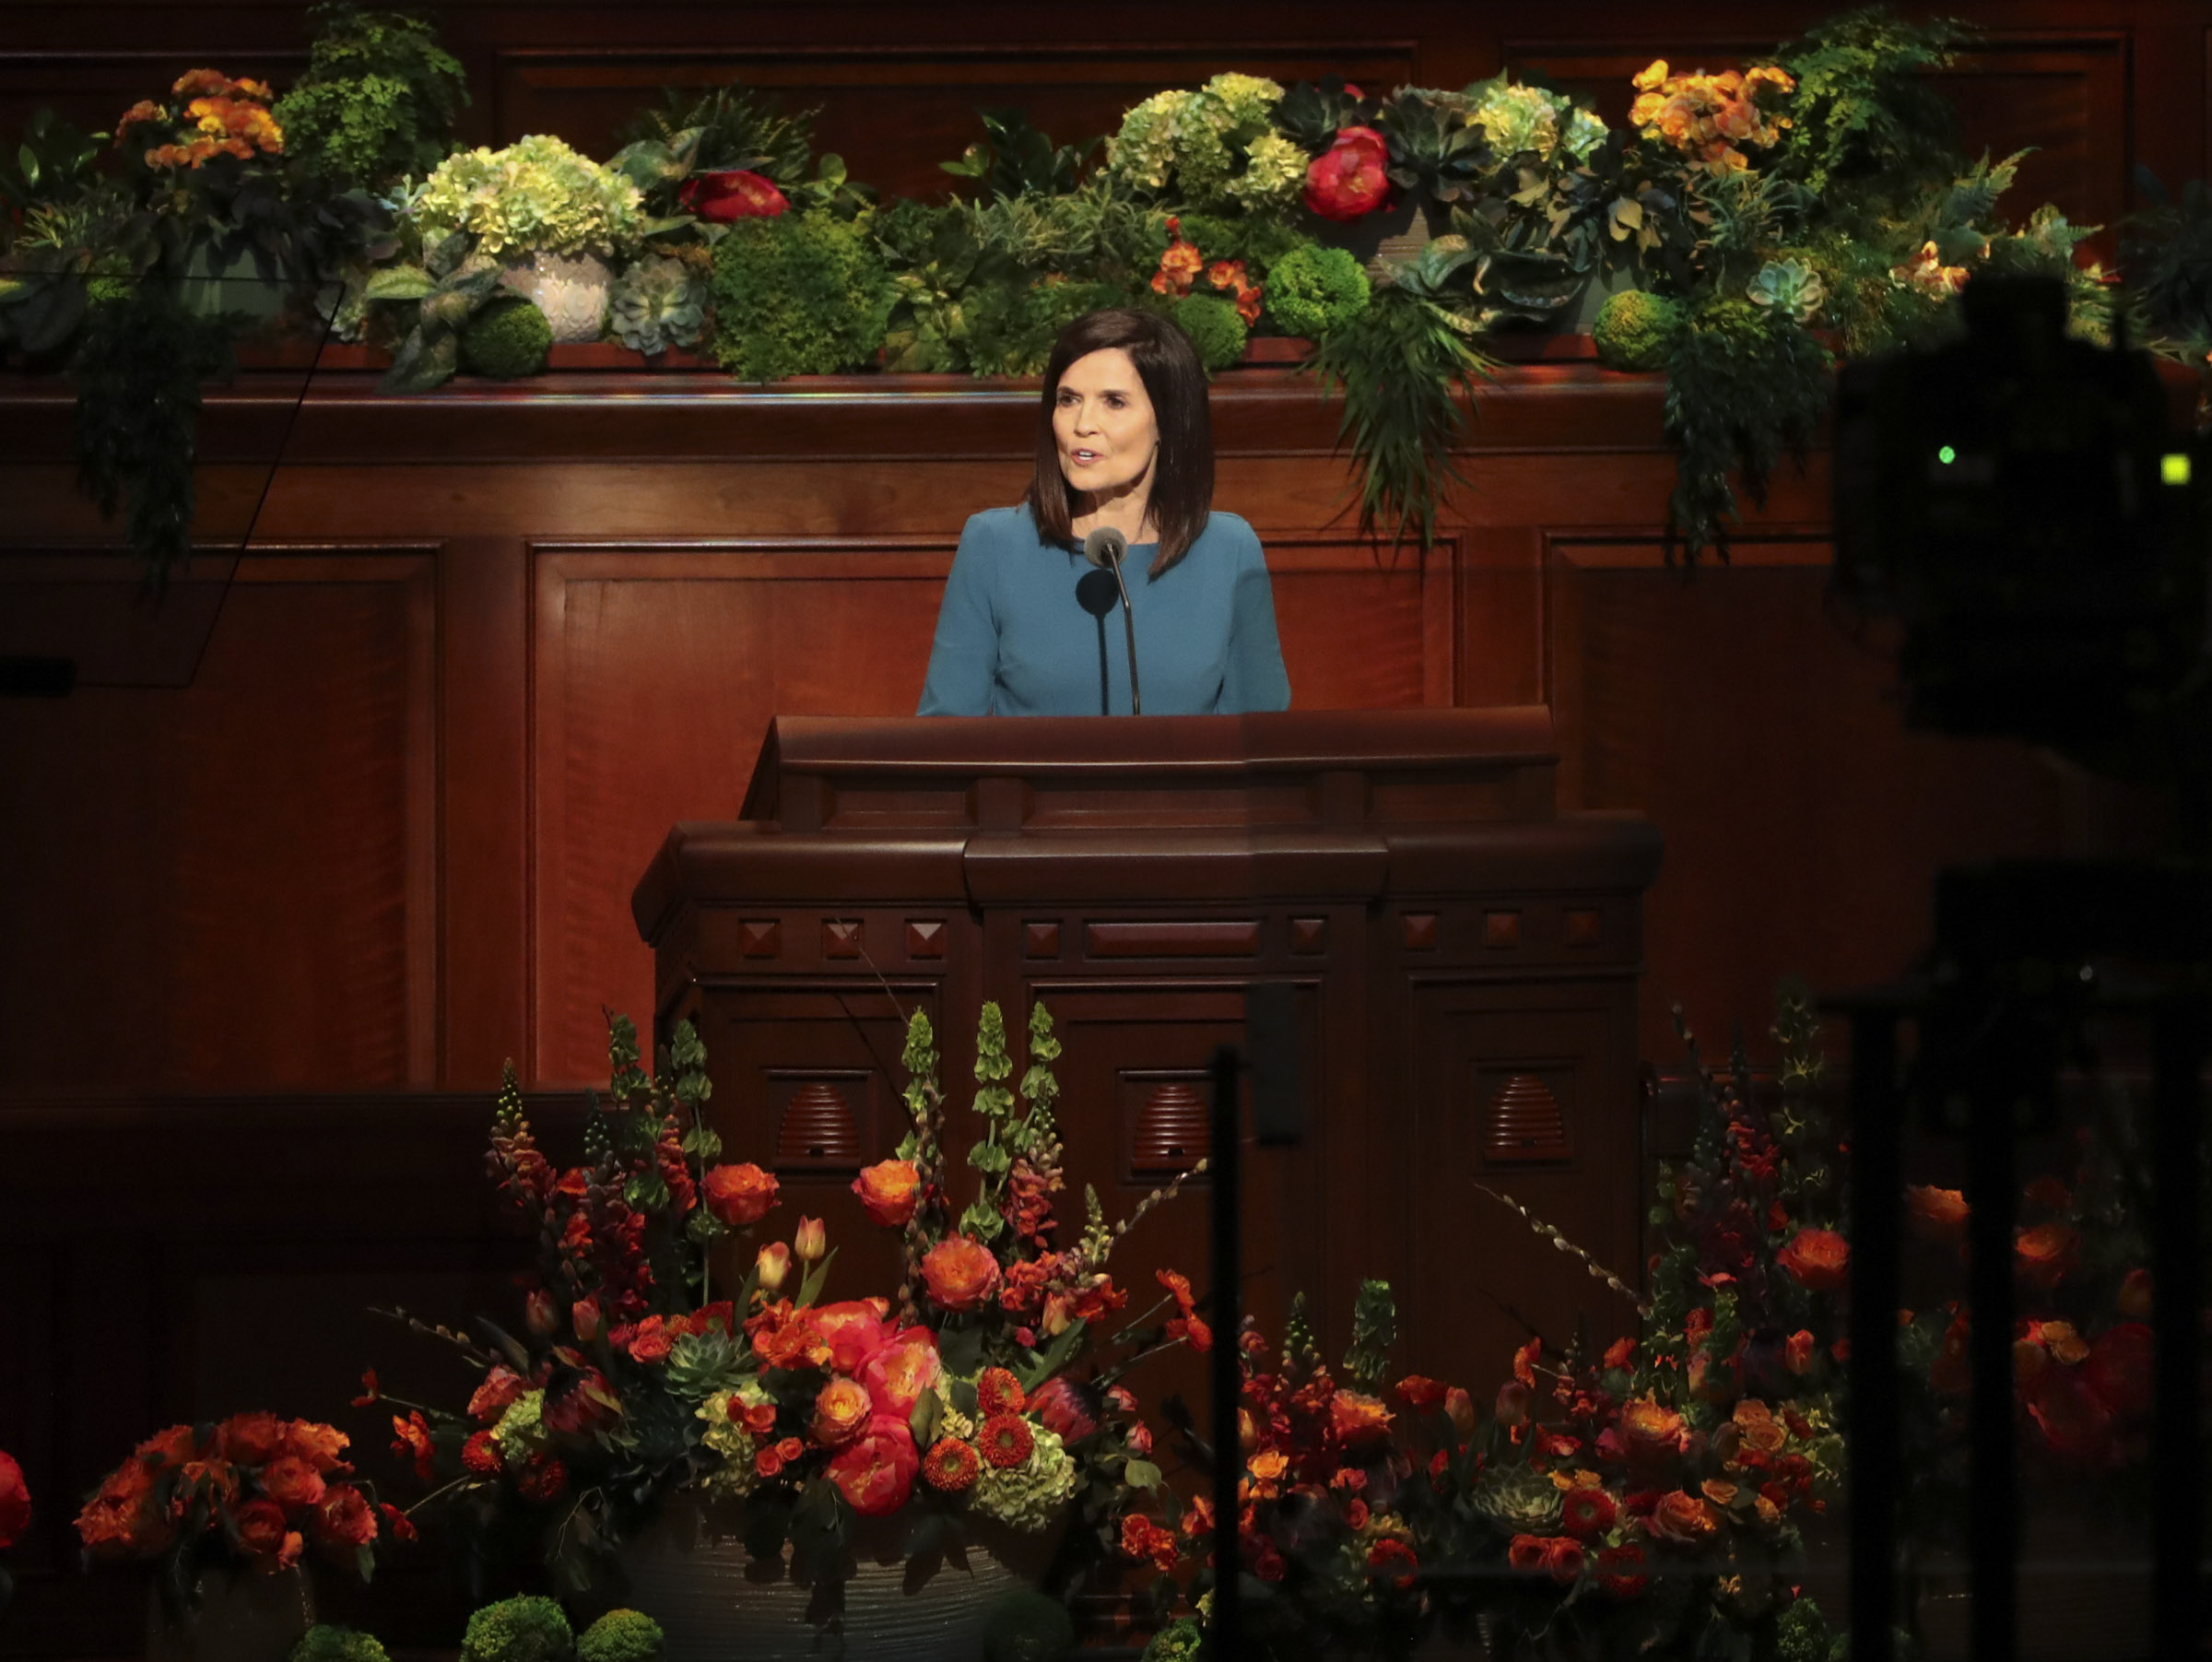 Sister Becky Craven, second counselor in the Young Women general presidency, speaks in the Conference Center in Salt Lake City during the morning session of the 189th Annual General Conference of The Church of Jesus Christ of Latter-day Saints on Saturday, April 6, 2019.